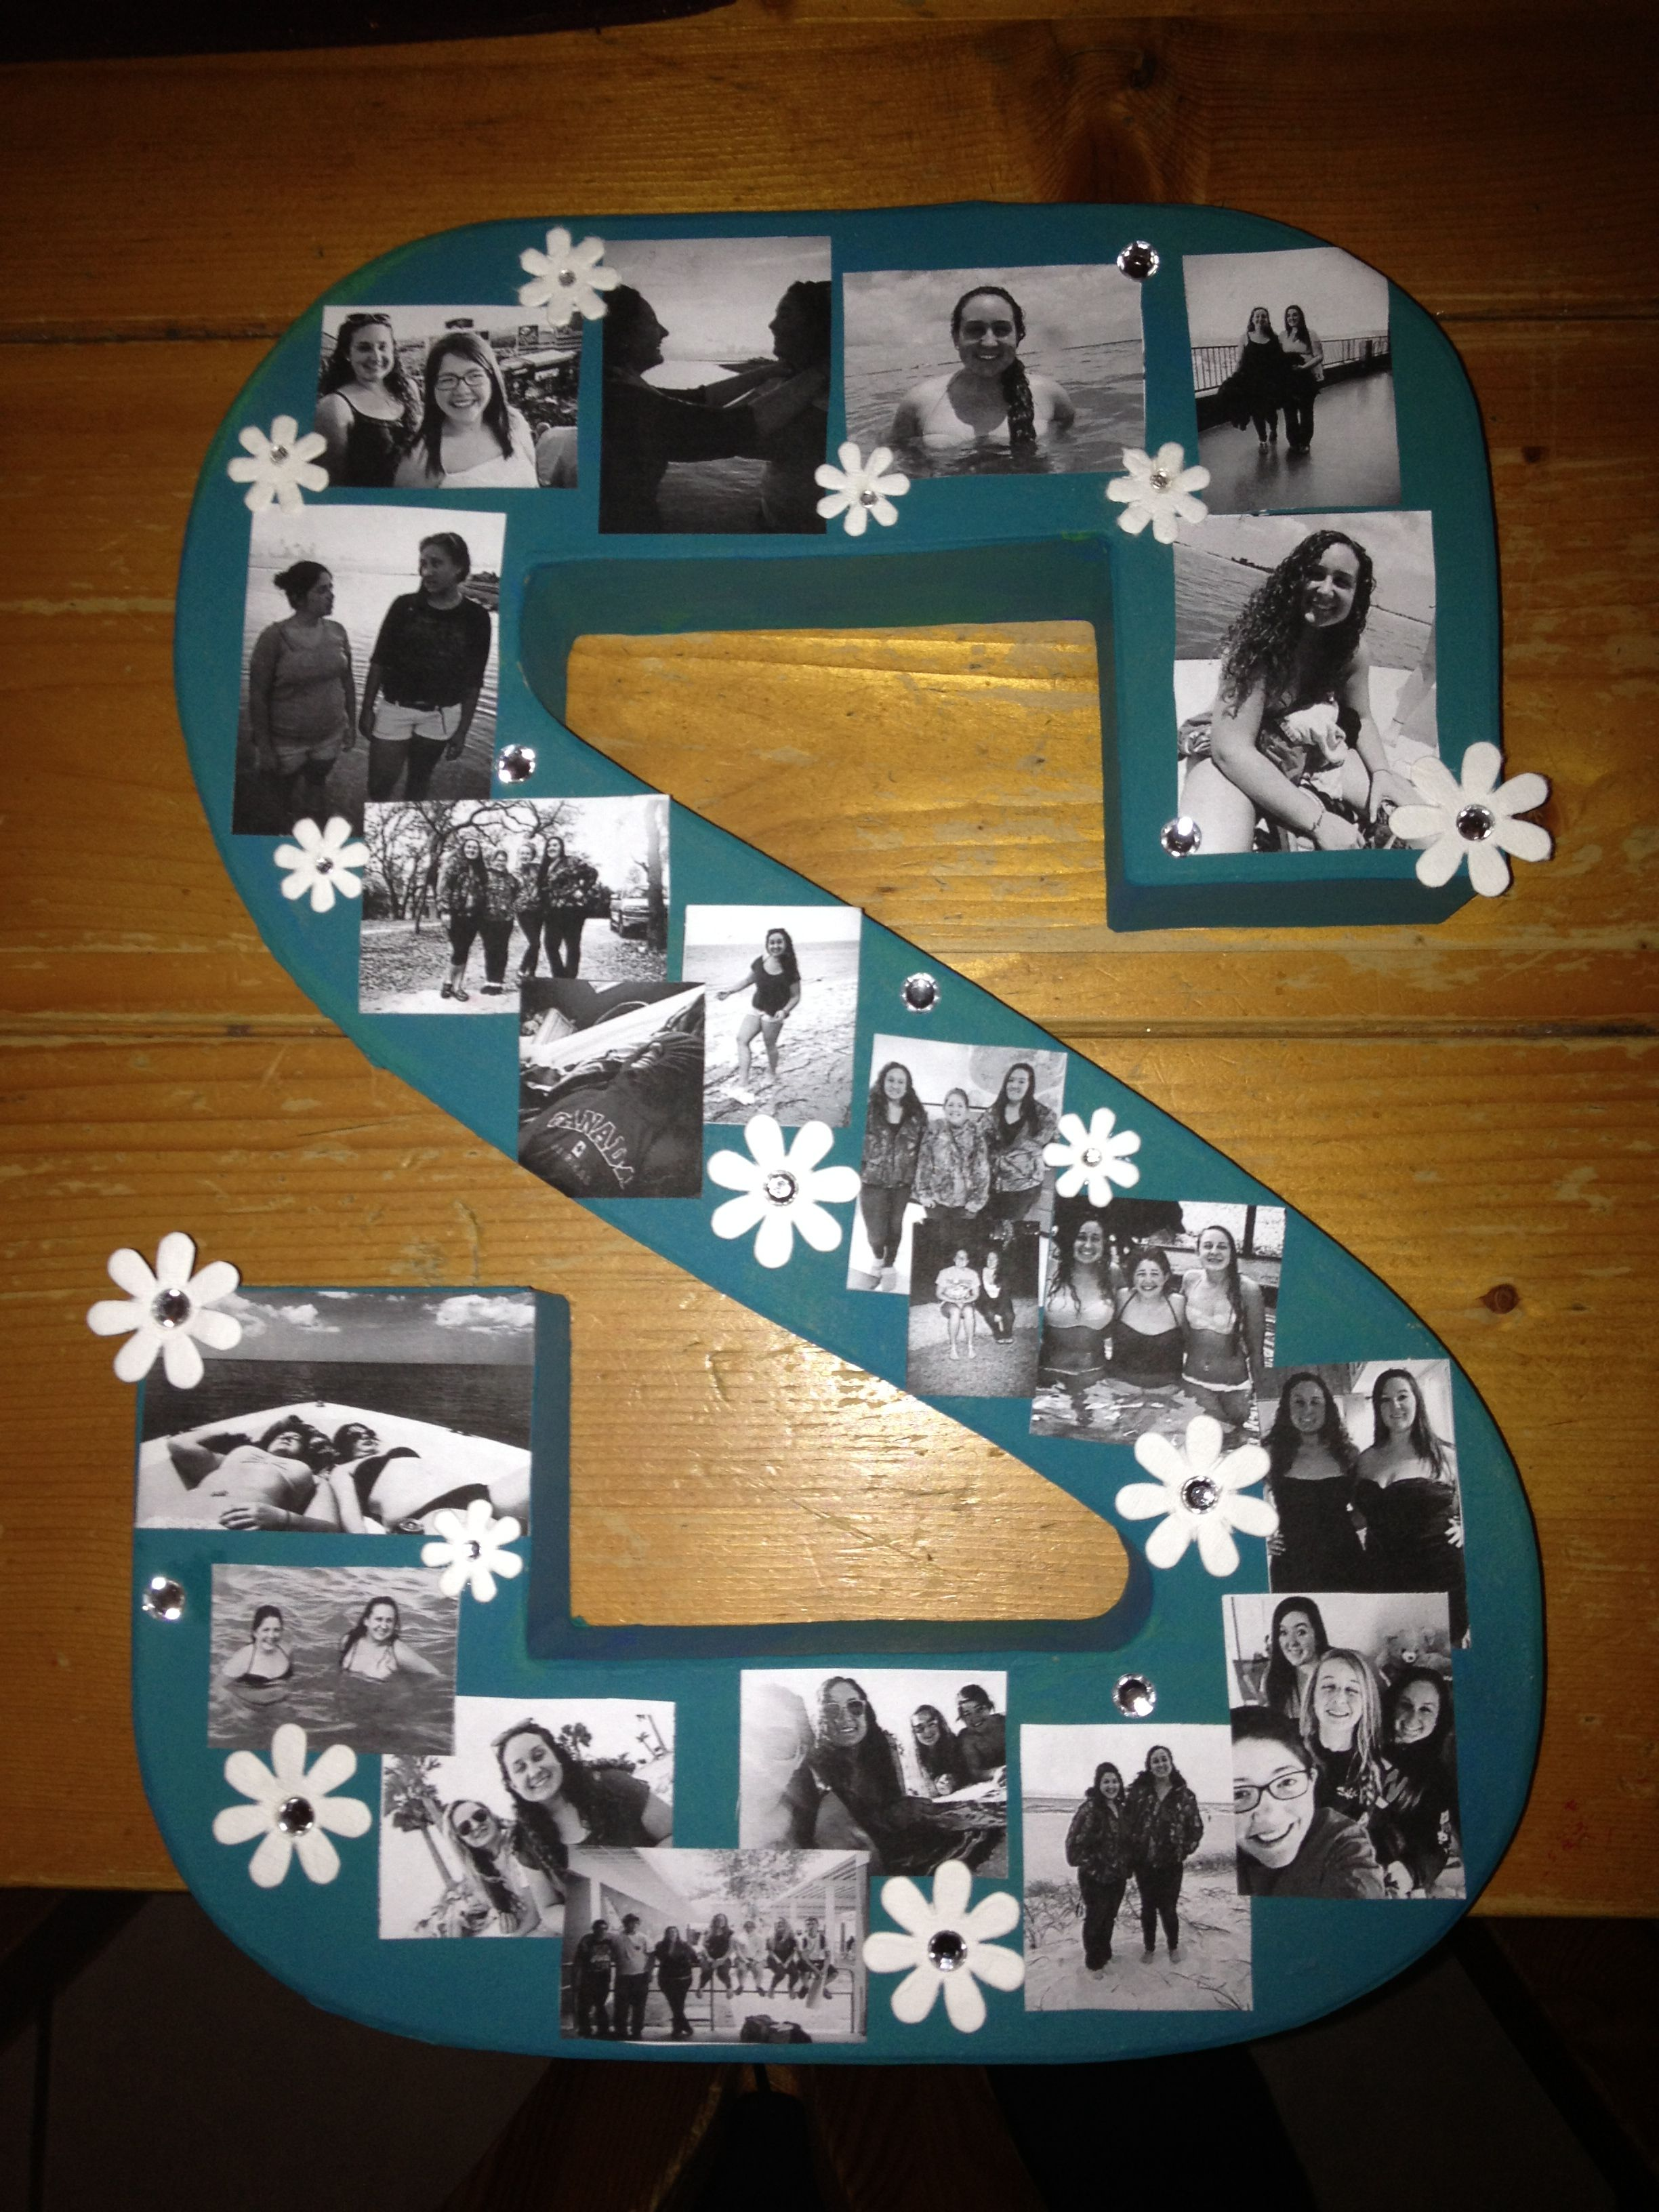 Crafty present for my bestfriend this Christmas ❤